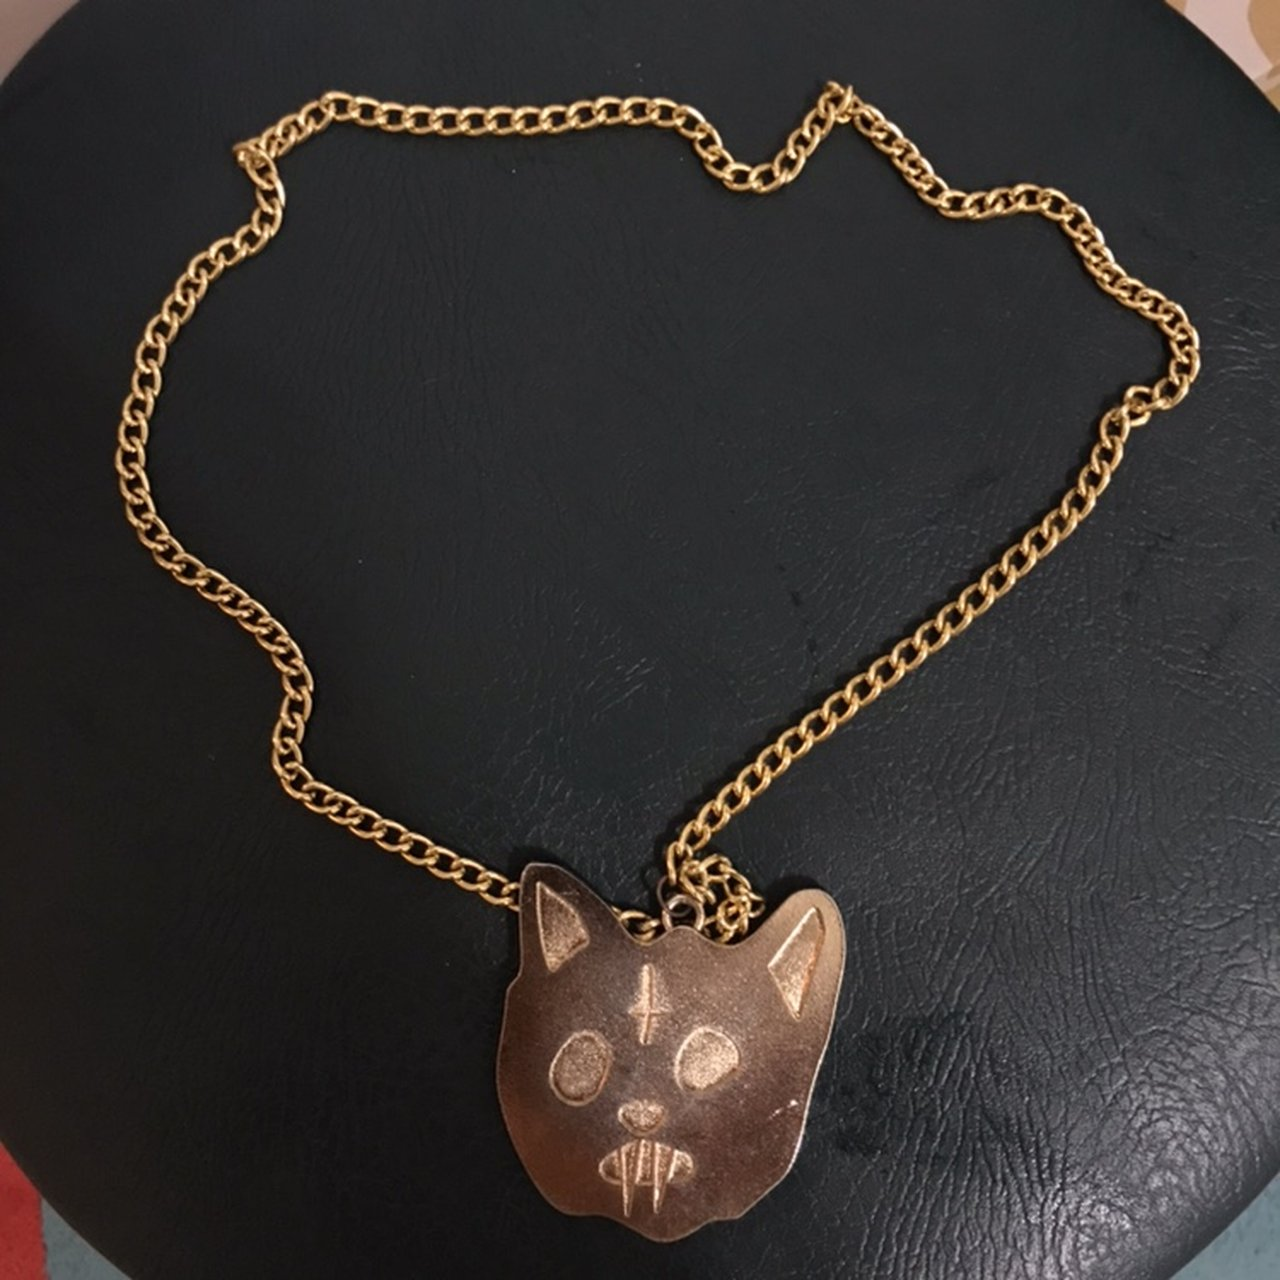 6d8ffd474536 Golf wang chain . If u know u know. 100% authentic